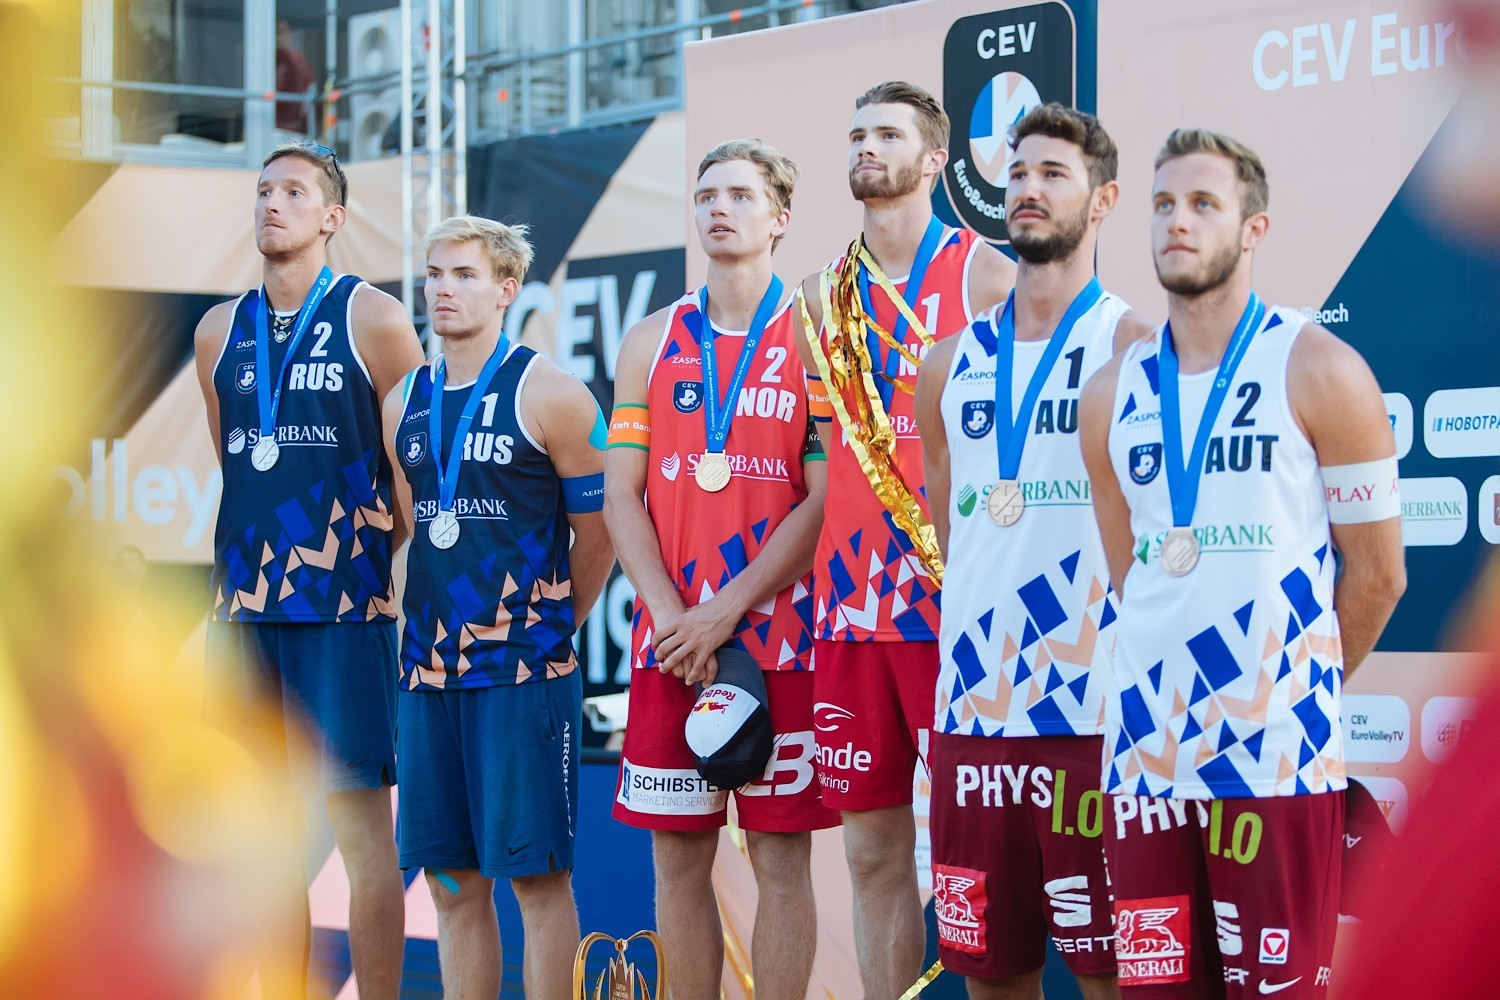 Russia, Norway and Austria at the podium in Moscow (Photocredit: CEV)